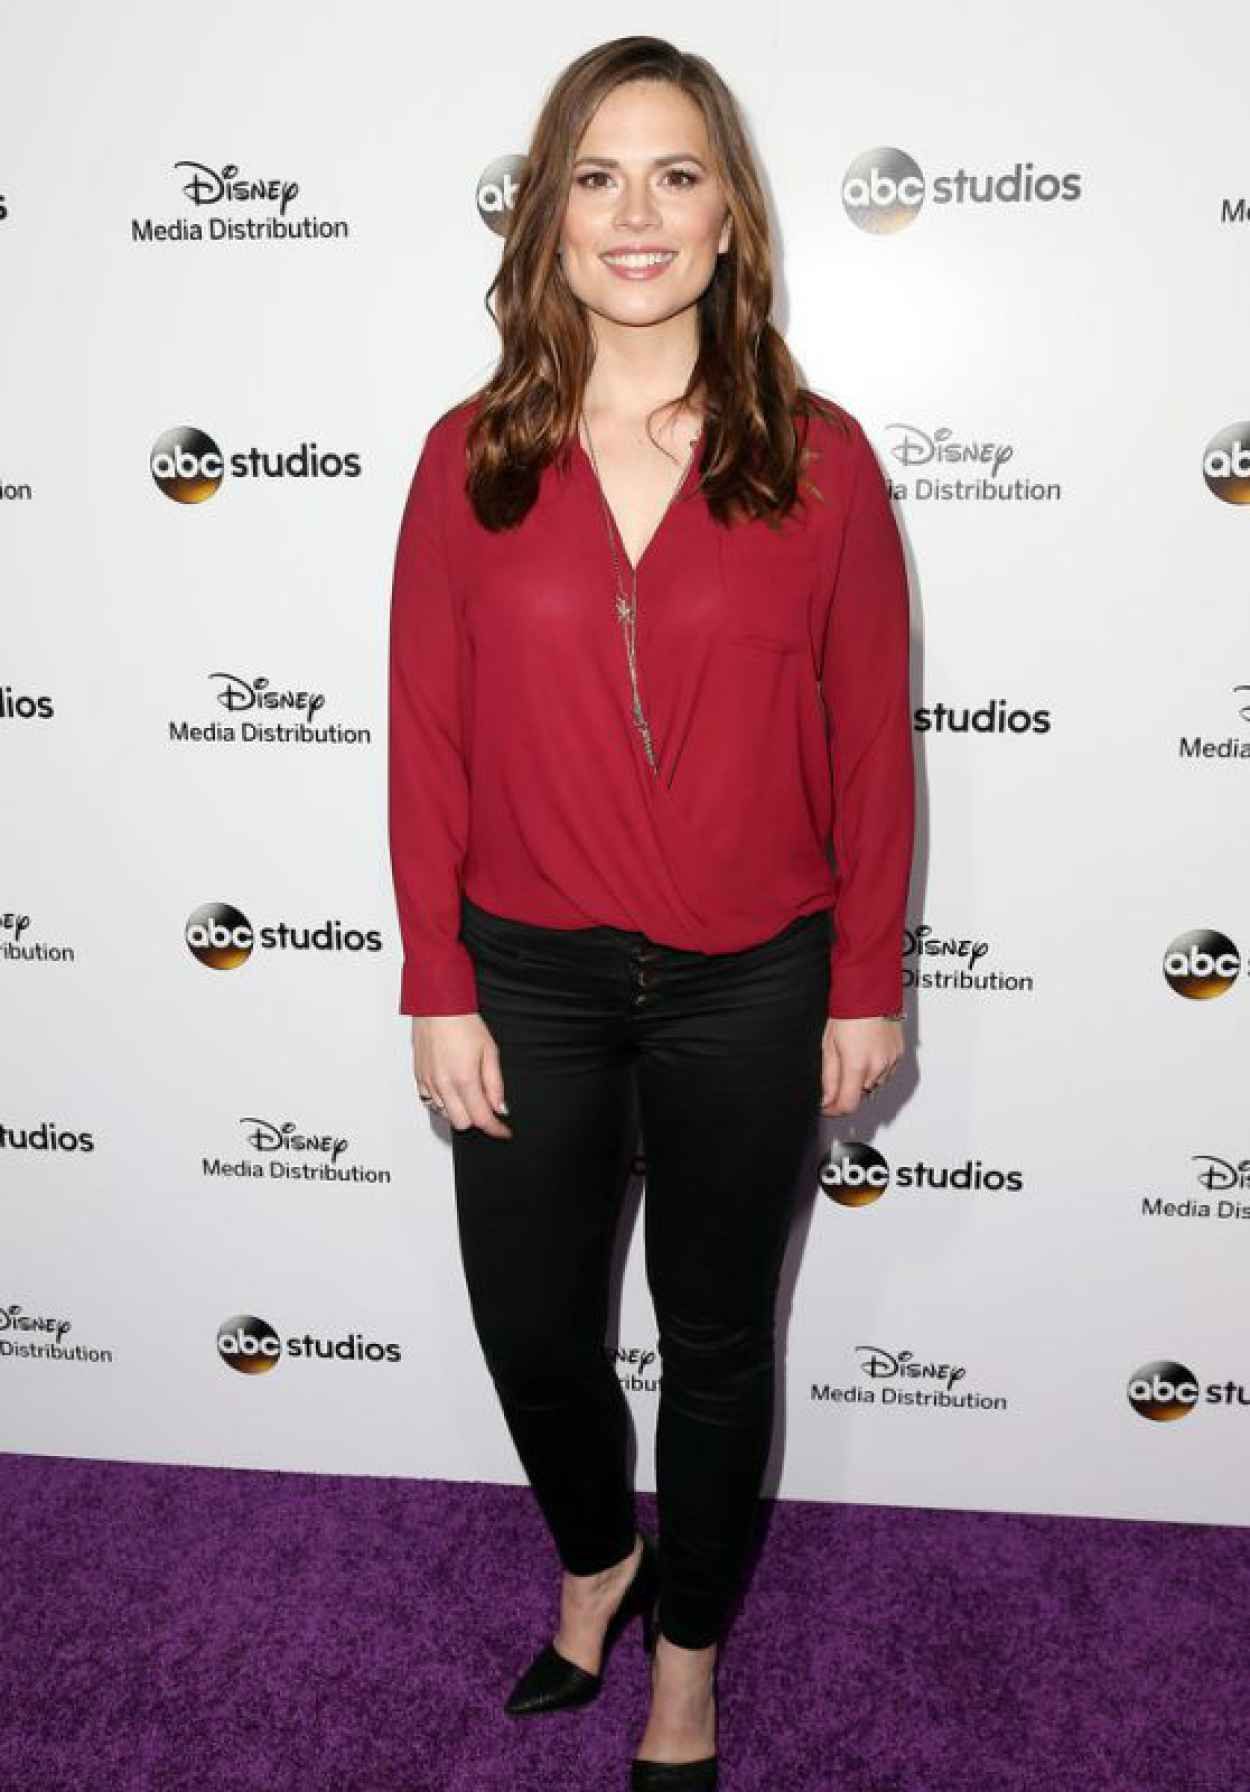 Hayley Atwell - Disney Media Distribution International Upfronts in Burbank, May 2015-1